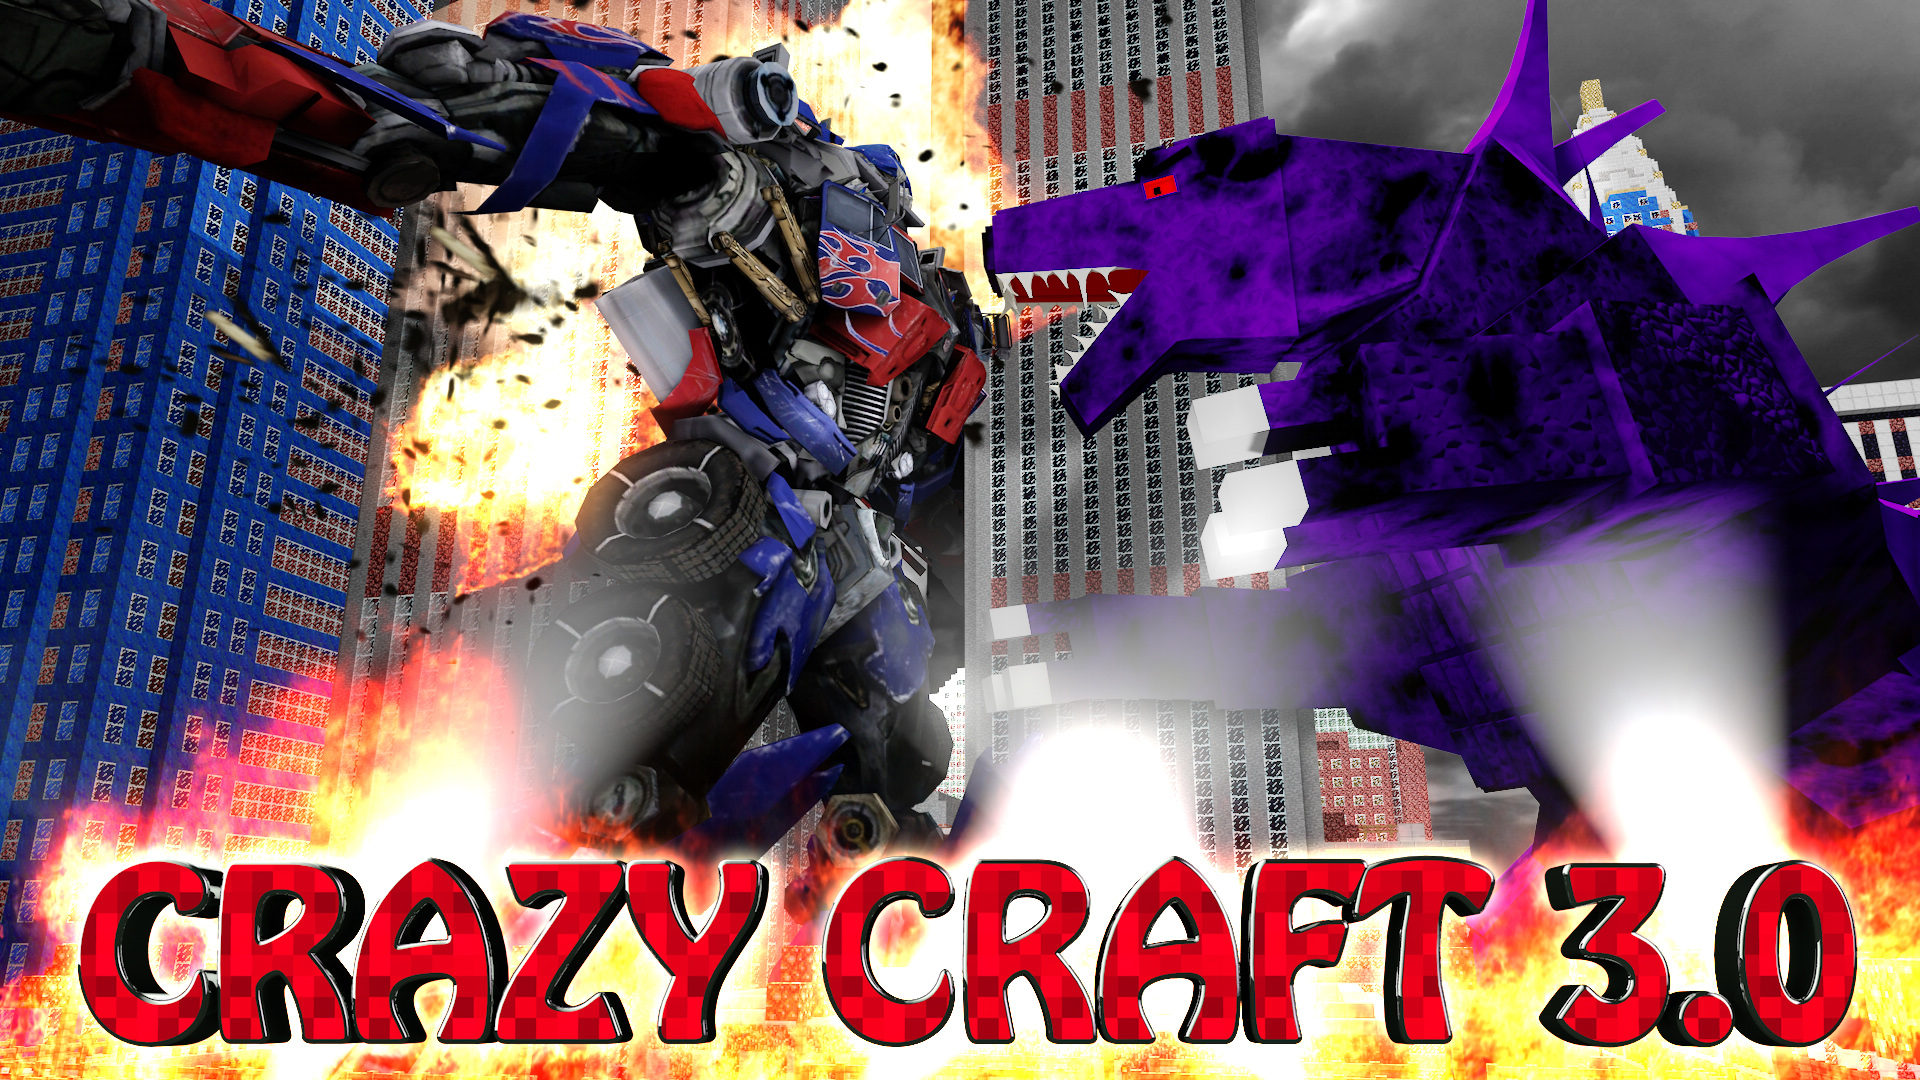 Crazy Craft 3 0 Alpha Launch!